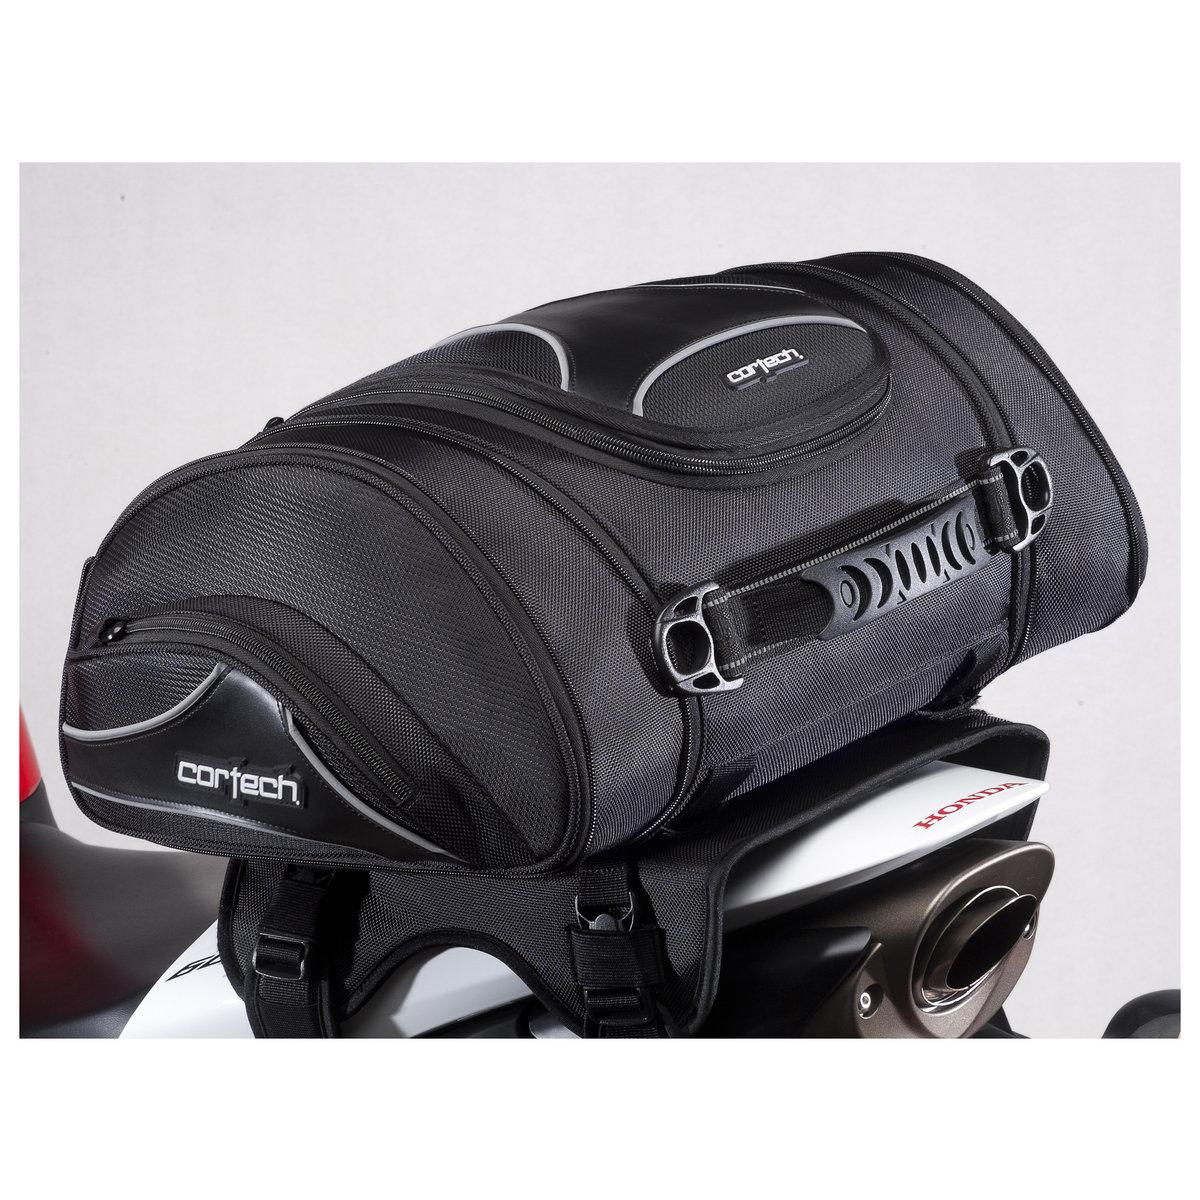 Cortech Super 2.0 14L Tail Bag